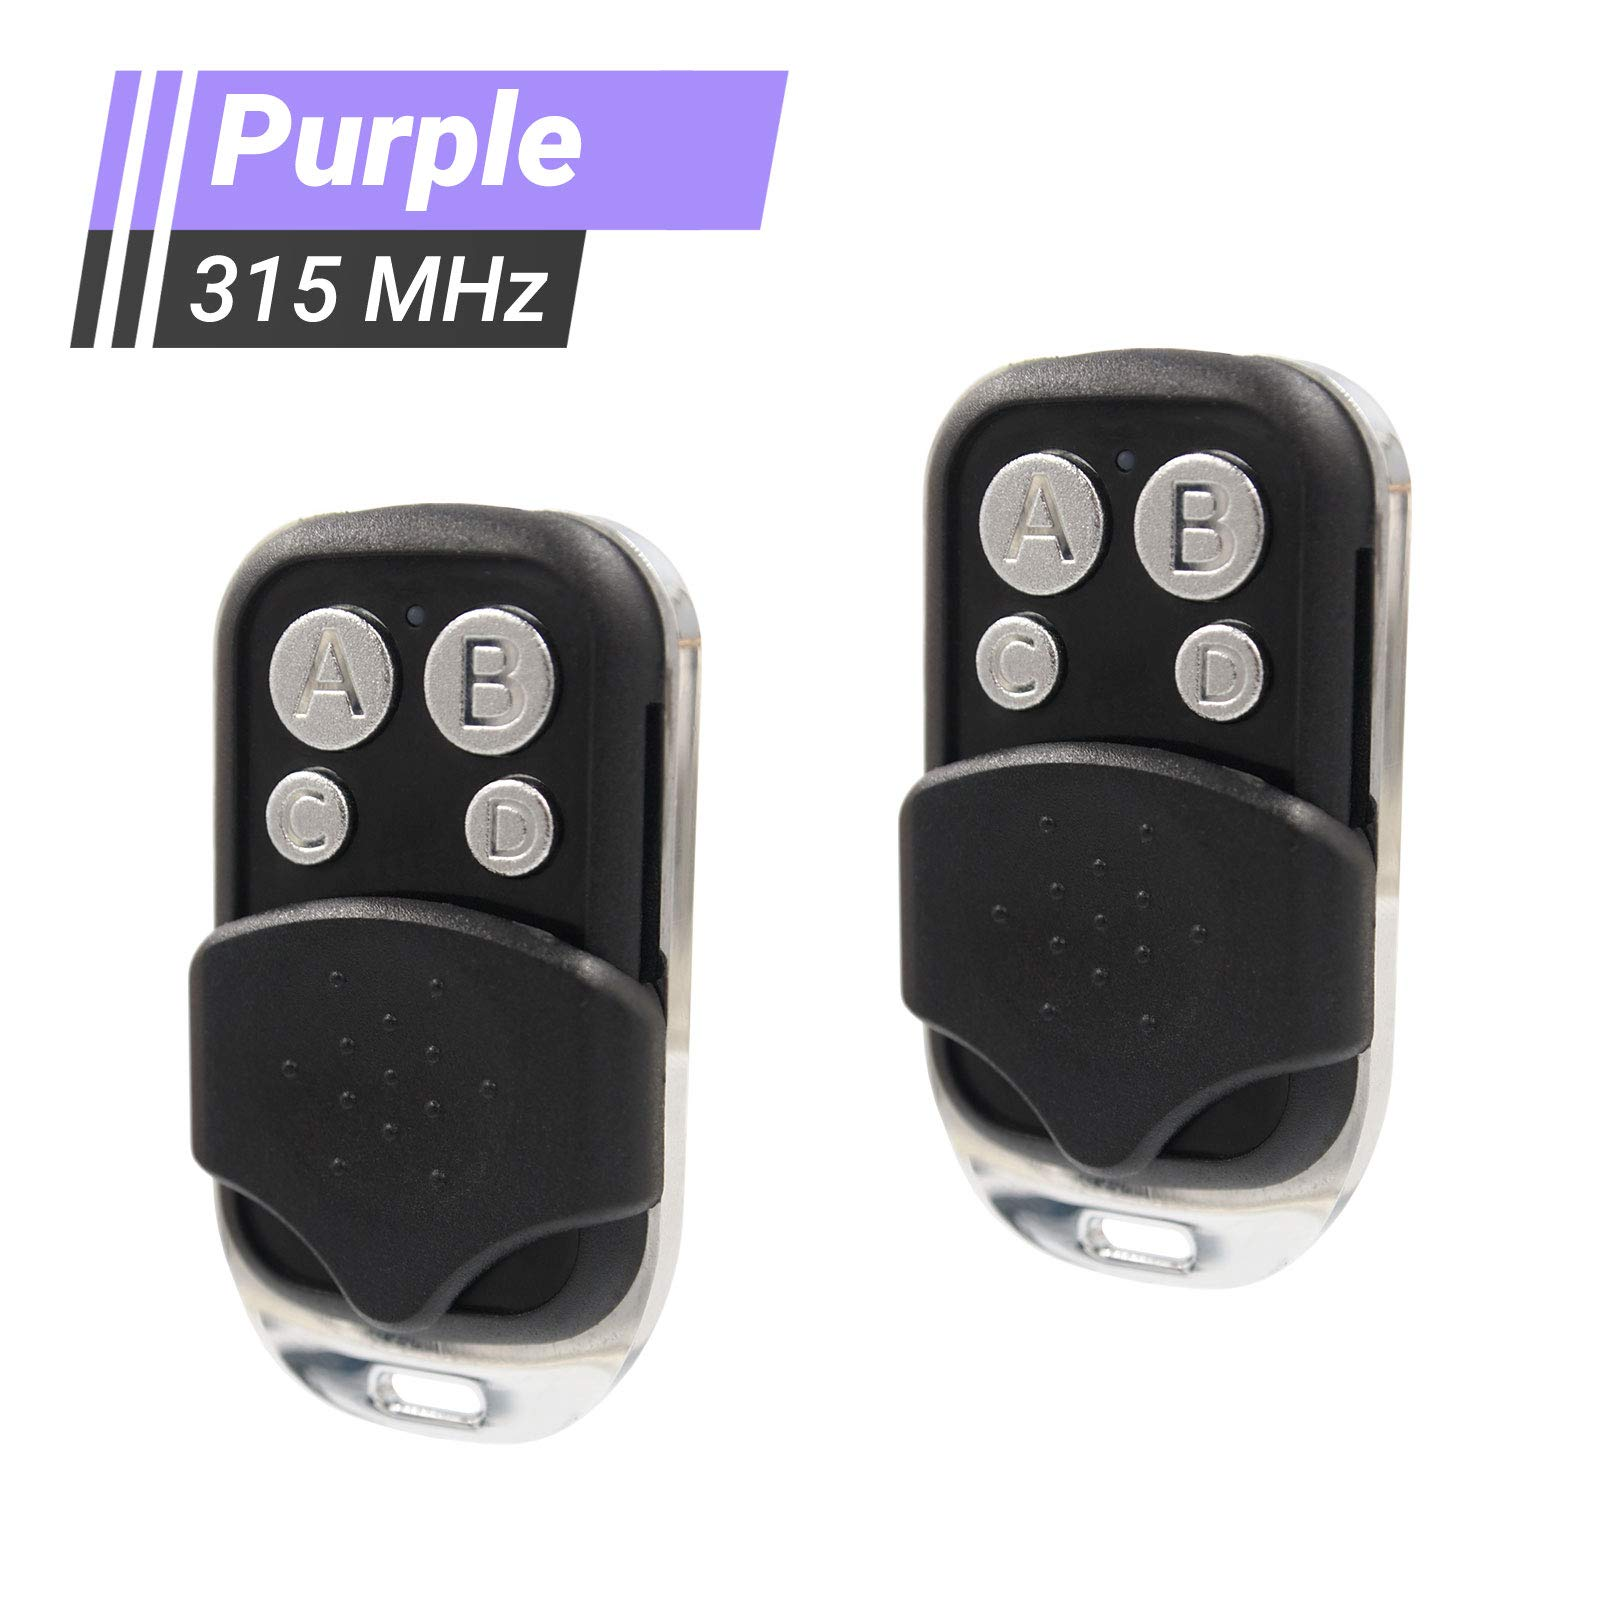 2 Pack - Replacement for LiftMaster 370LM 371LM 372LM 373LM - Chamberlain 950D 953D 956D - Craftsman 139.53753 Remote - Compatible with Garage Door Openers with Purple Learn Button 315MHz (C-SP-315)